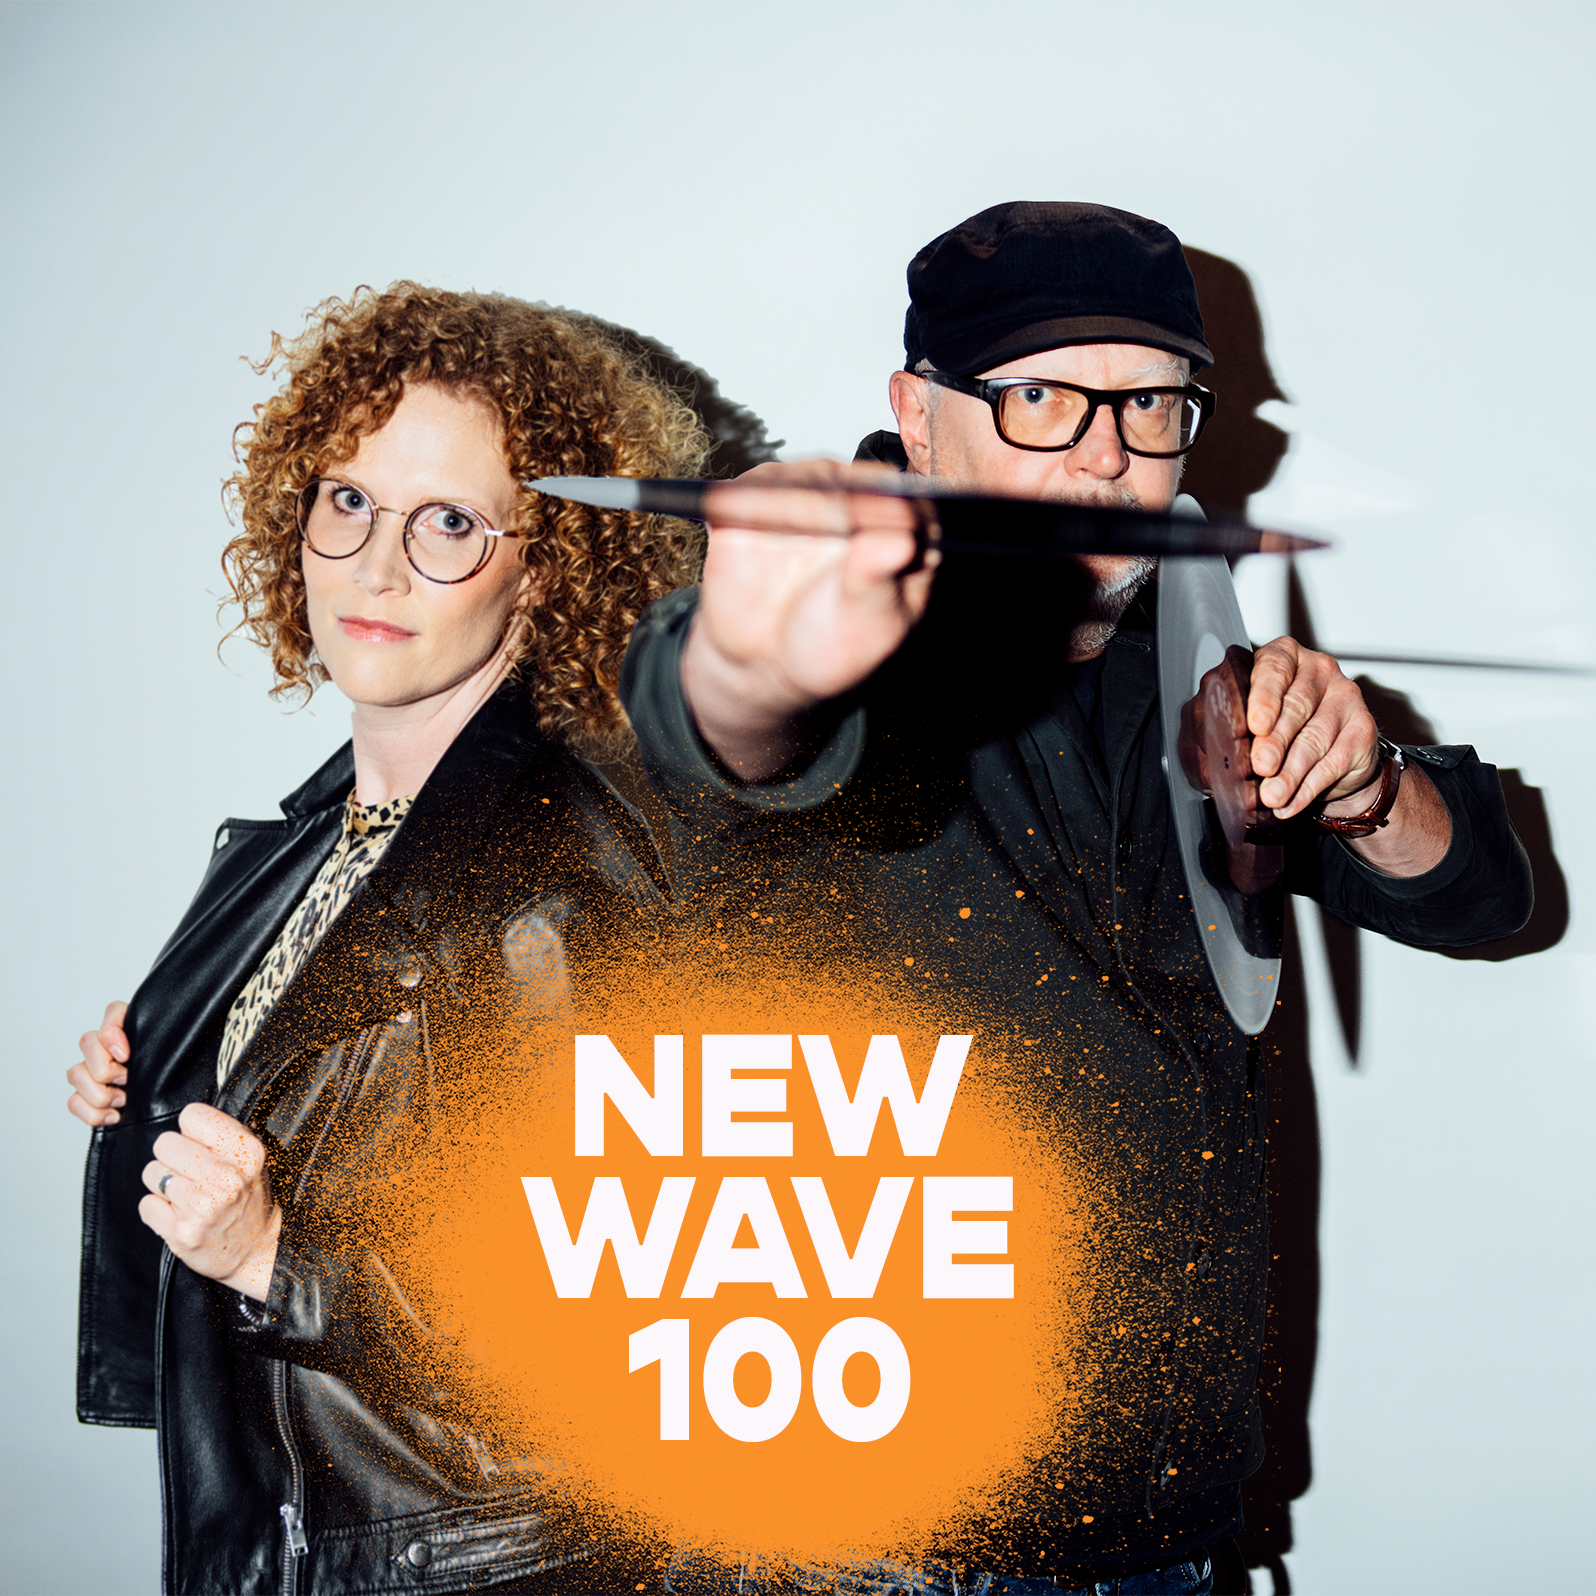 New wave 100